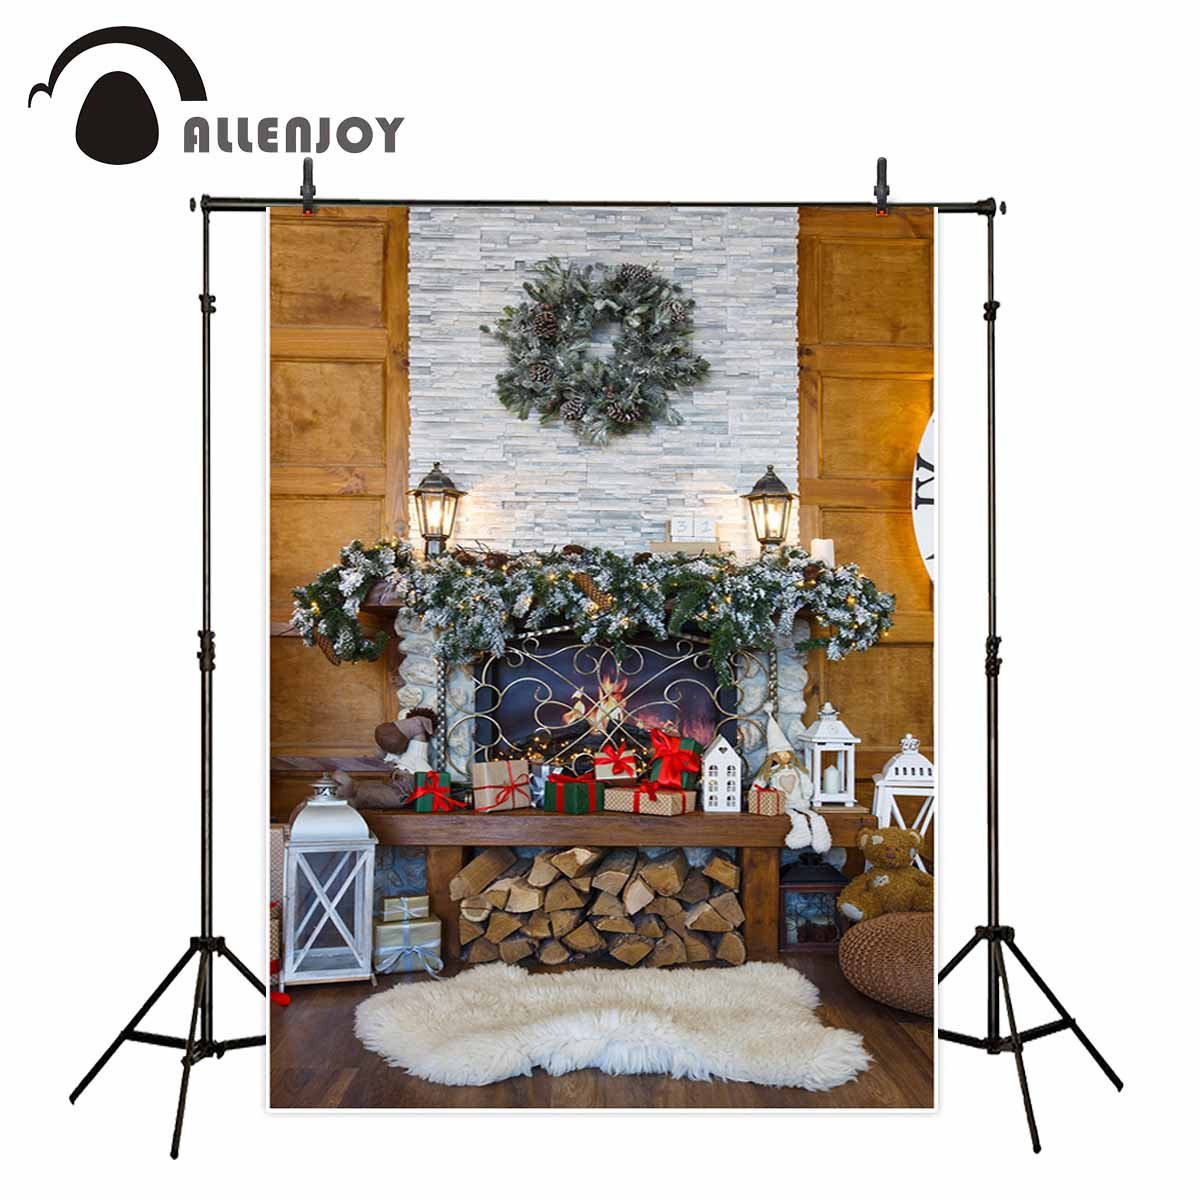 Allenjoy christmas decorations for home backdrop fireplace wood gift carpet photographic background photo booth allenjoy christmas backdrop tree gift chandelier fireplace cute professional background backdrop for photo studio